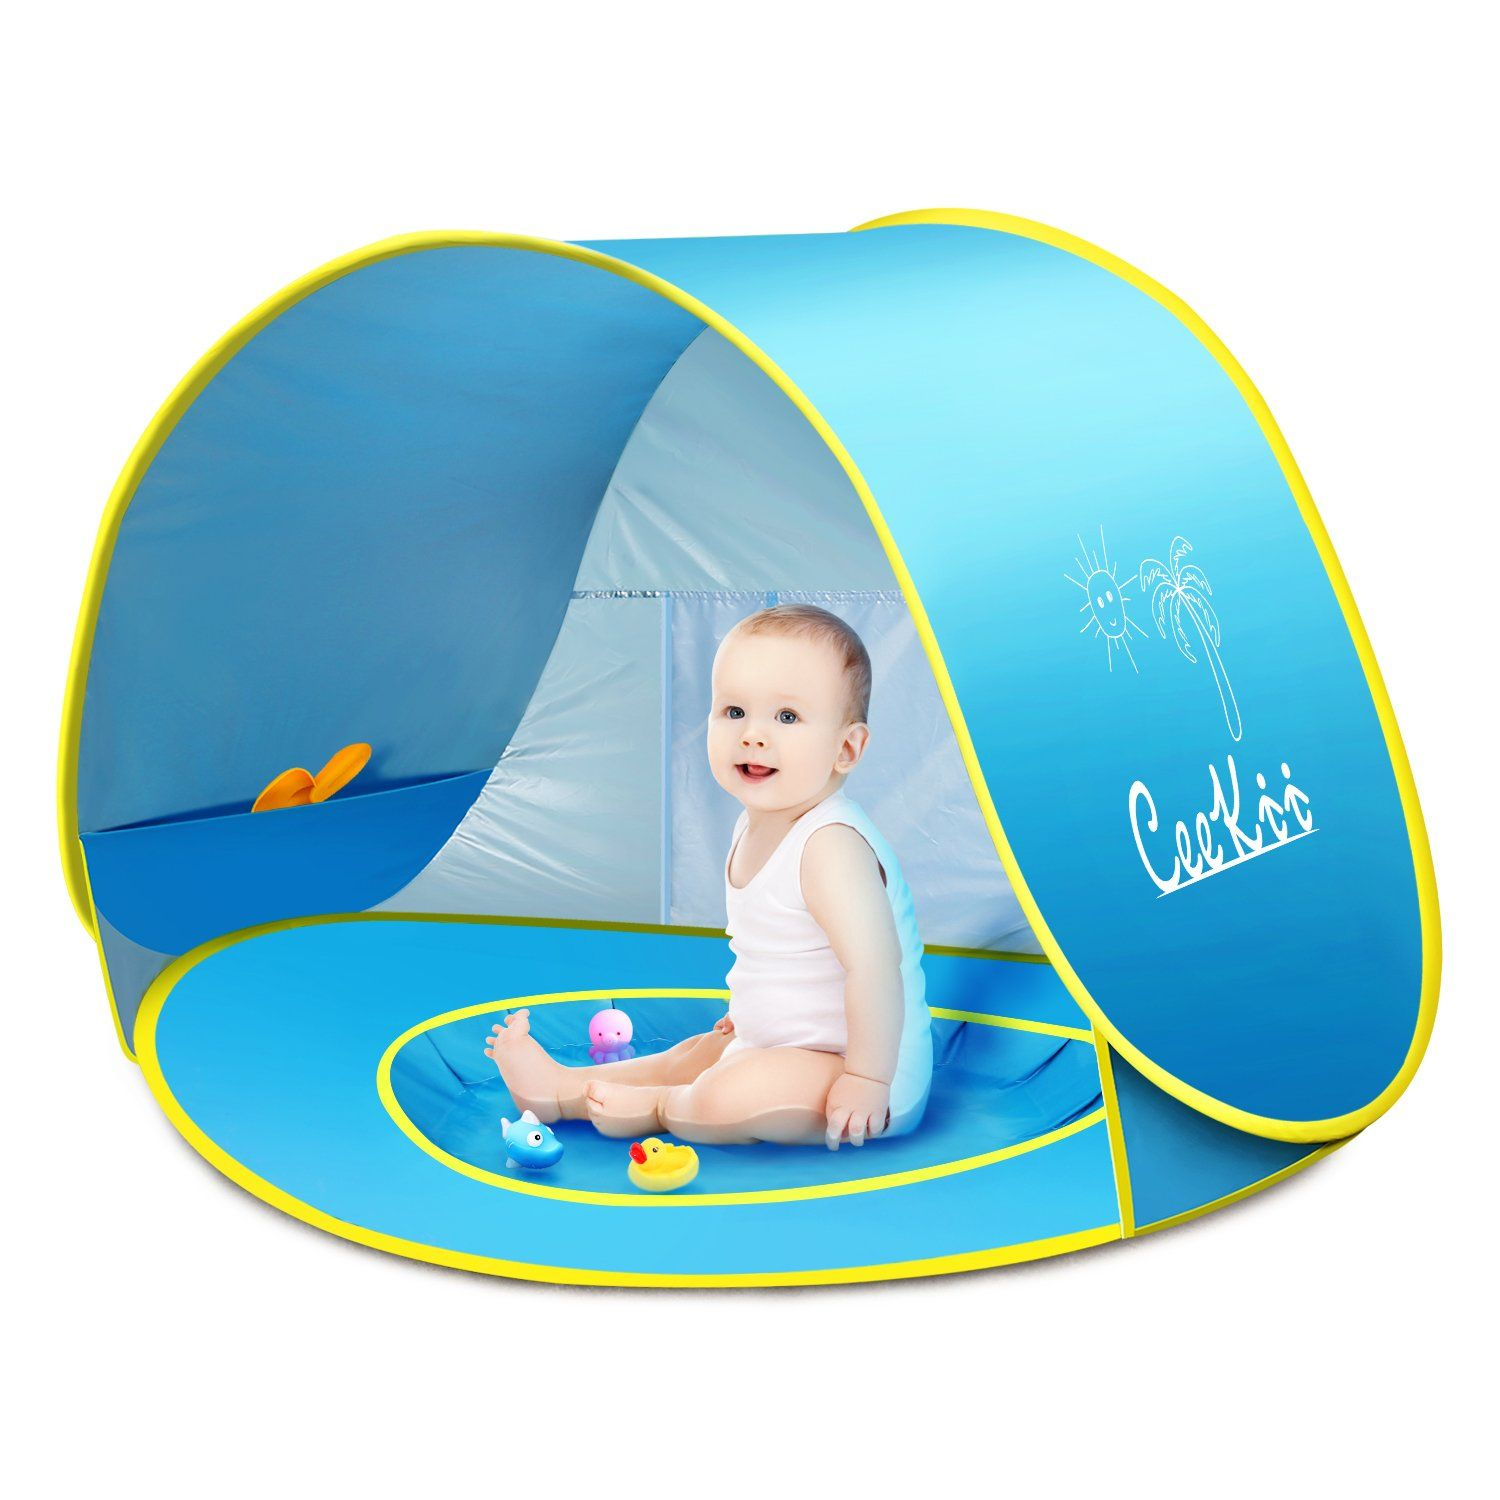 Ceekii Baby Beach Tent Pop Up Tent Portable Shade Pool Uv Protection Sun Shelter With Mini Pool Carry Bag And Det Beach Tent Baby Beach Tent Pop Up Beach Tent